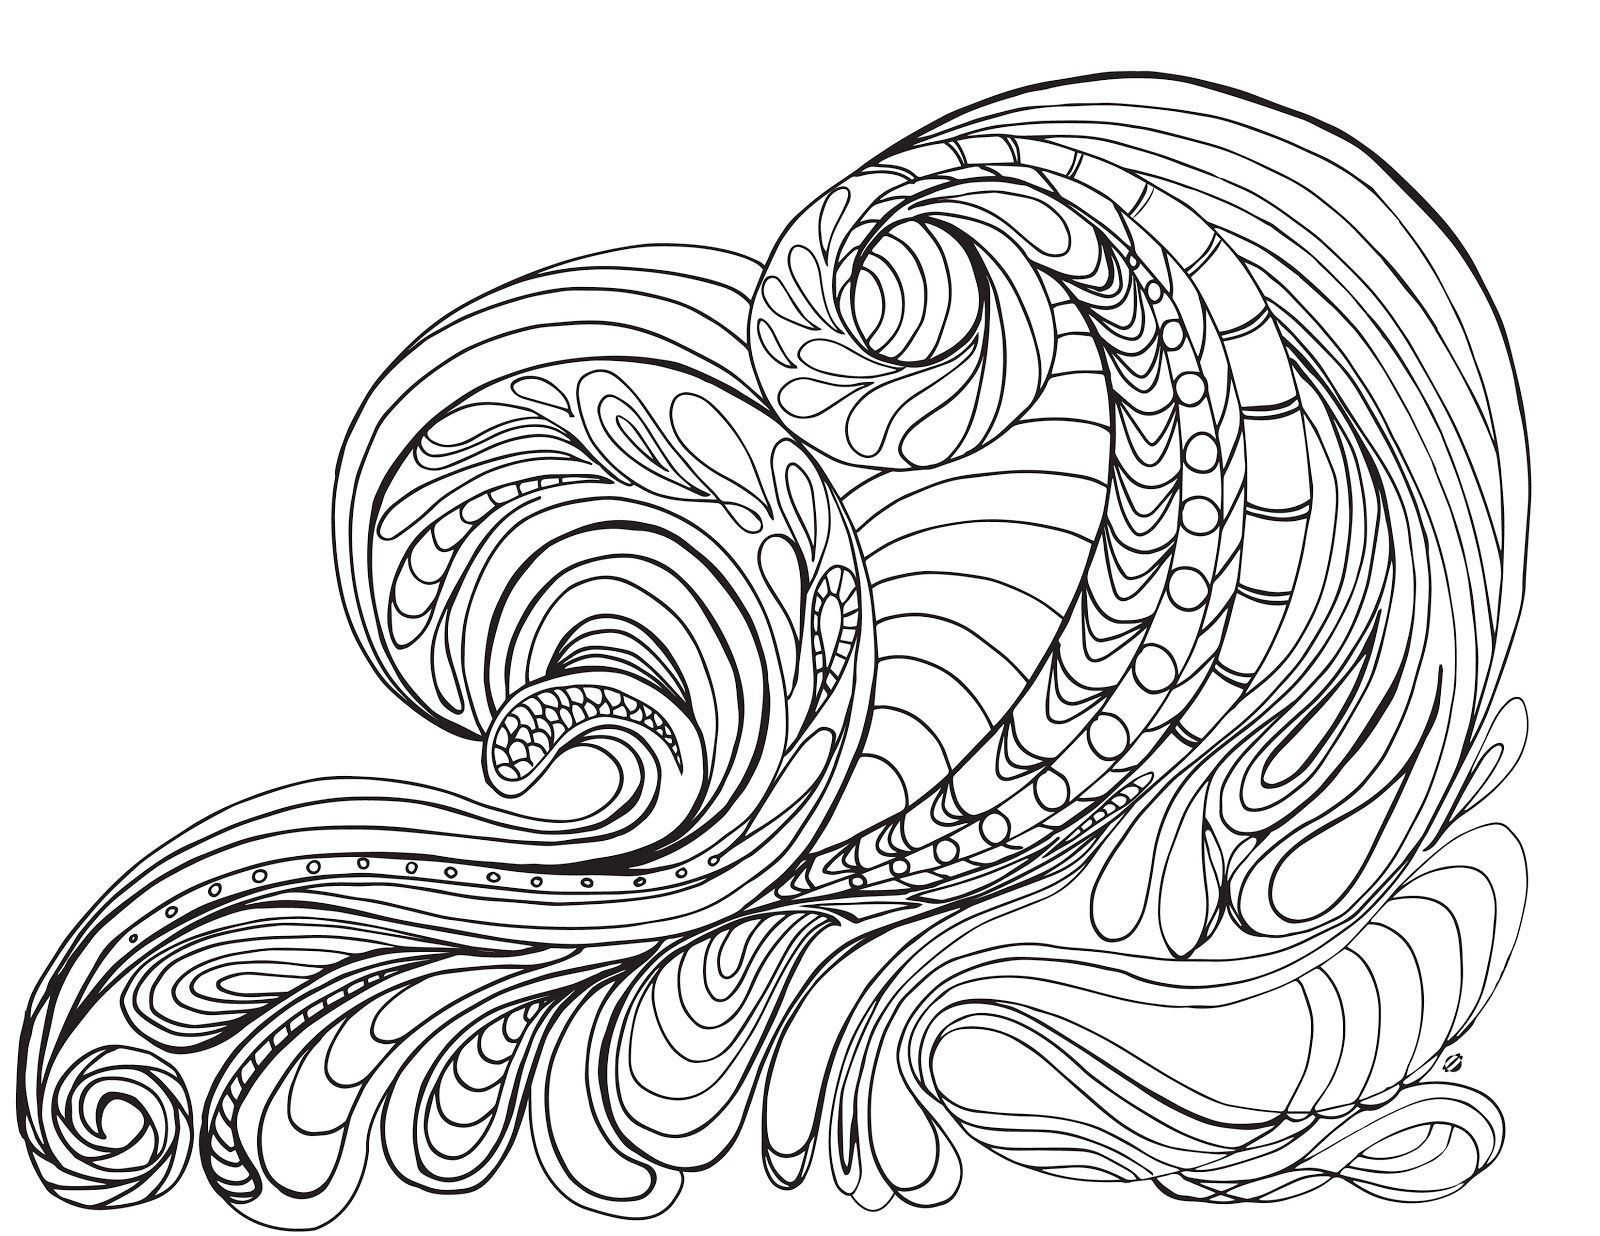 1600x1236 Waves Coloring Page Printable Free Coloring Pages